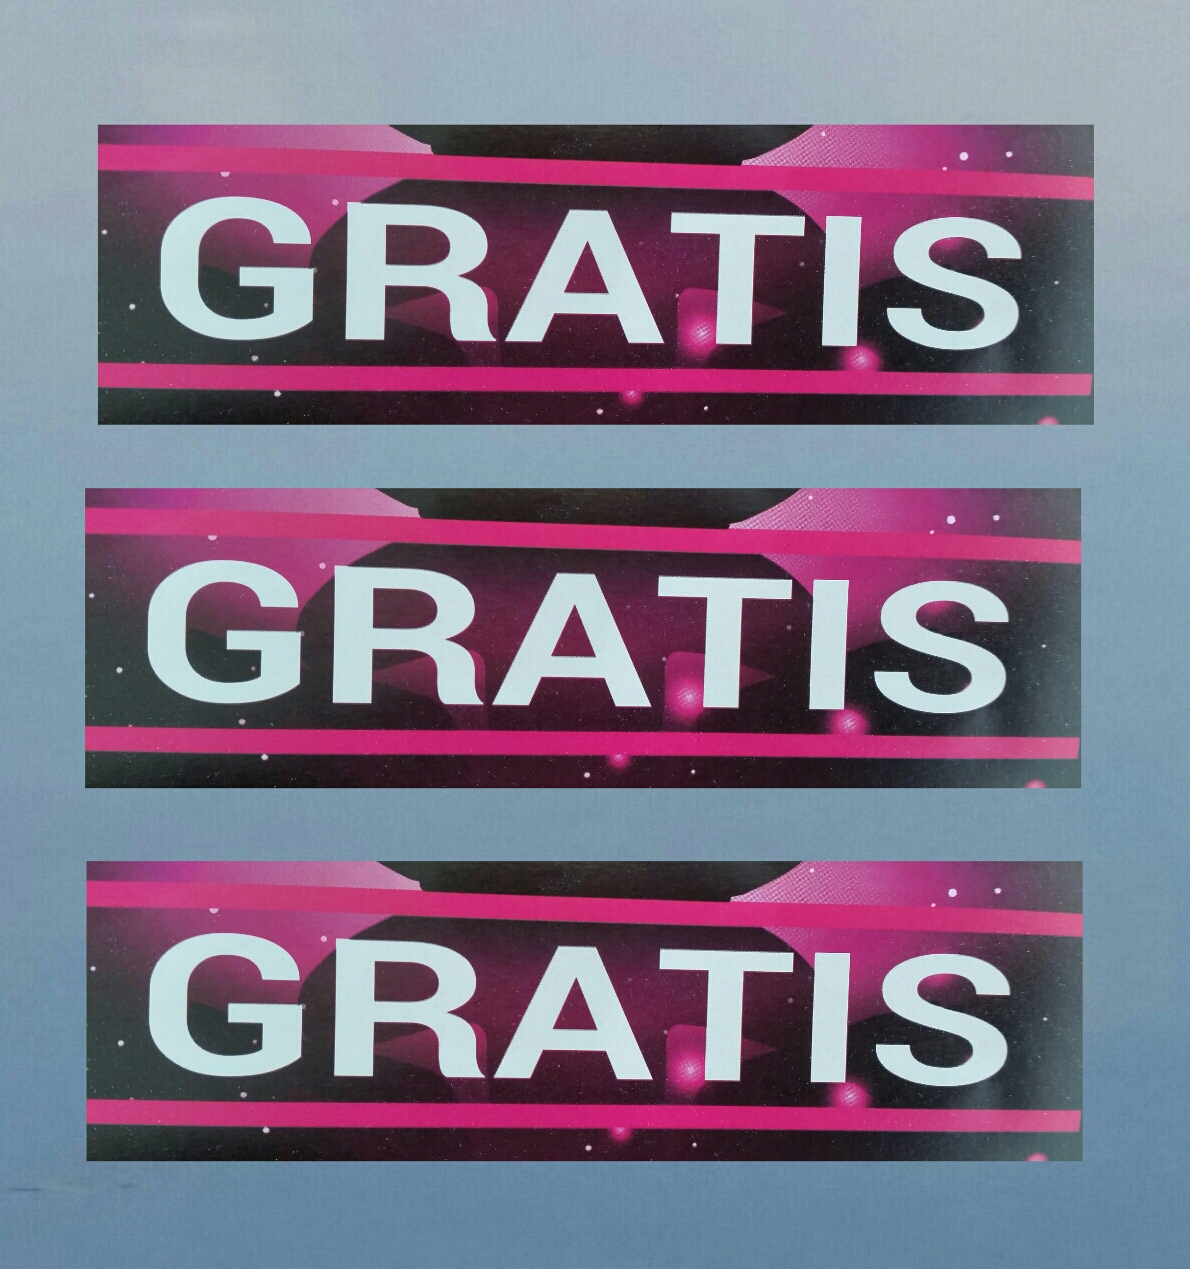 Gratis. Alternative Behandlere Net